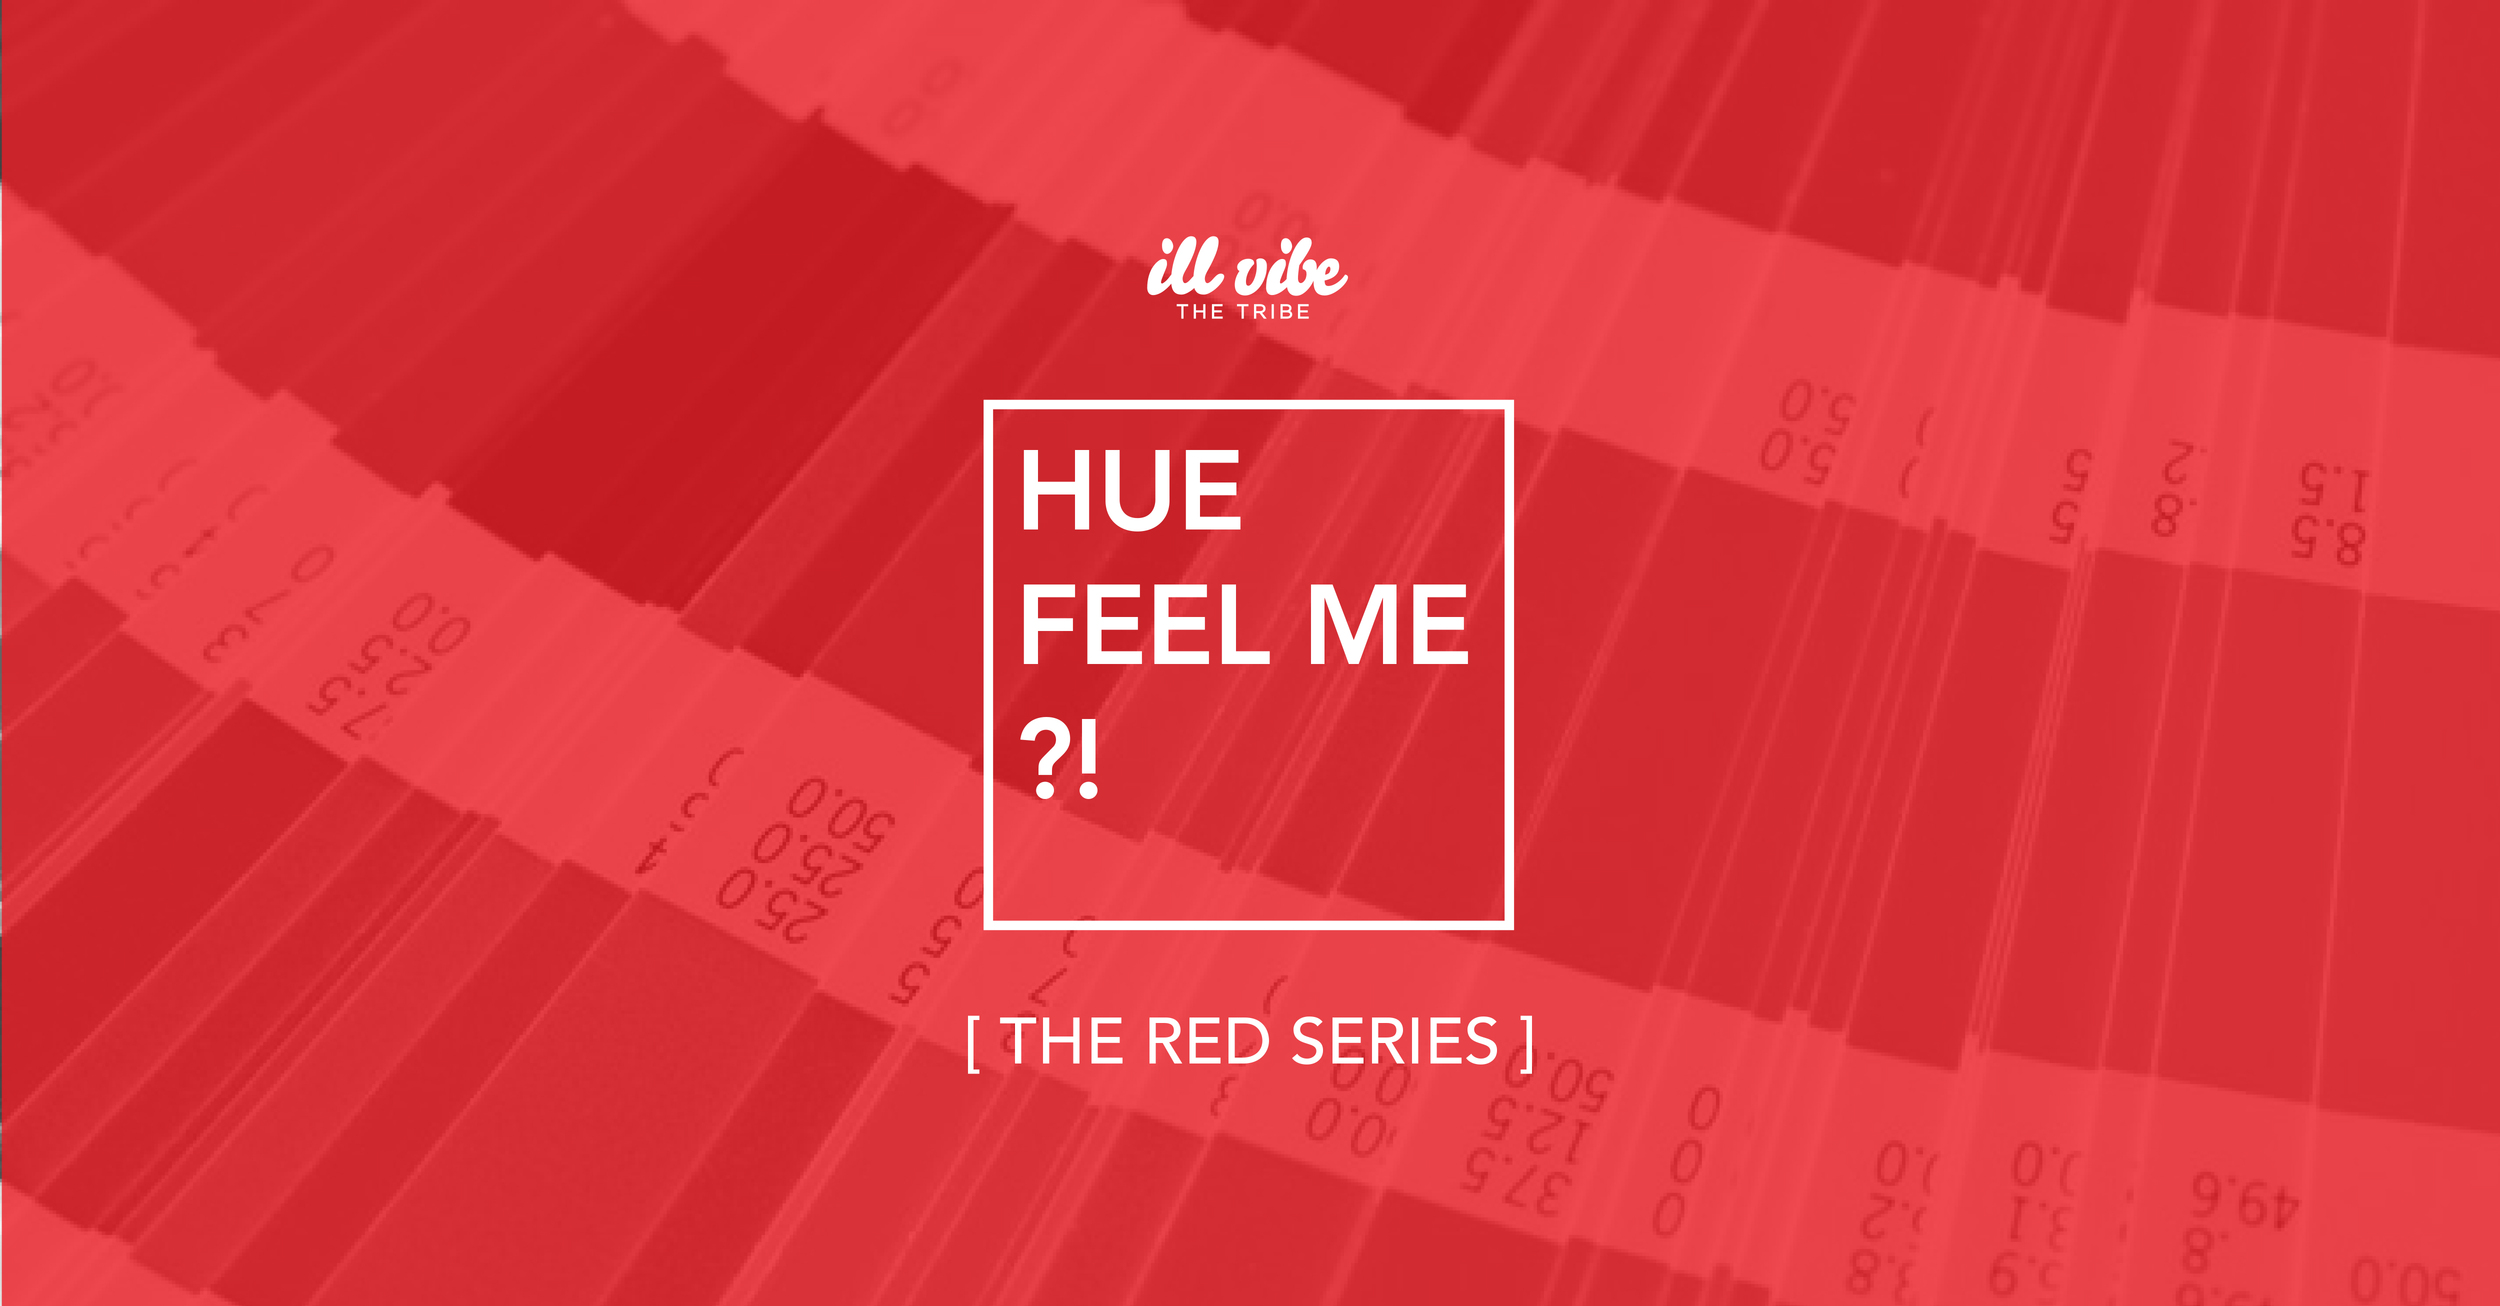 Hue Feel Me?! [The Red Series]